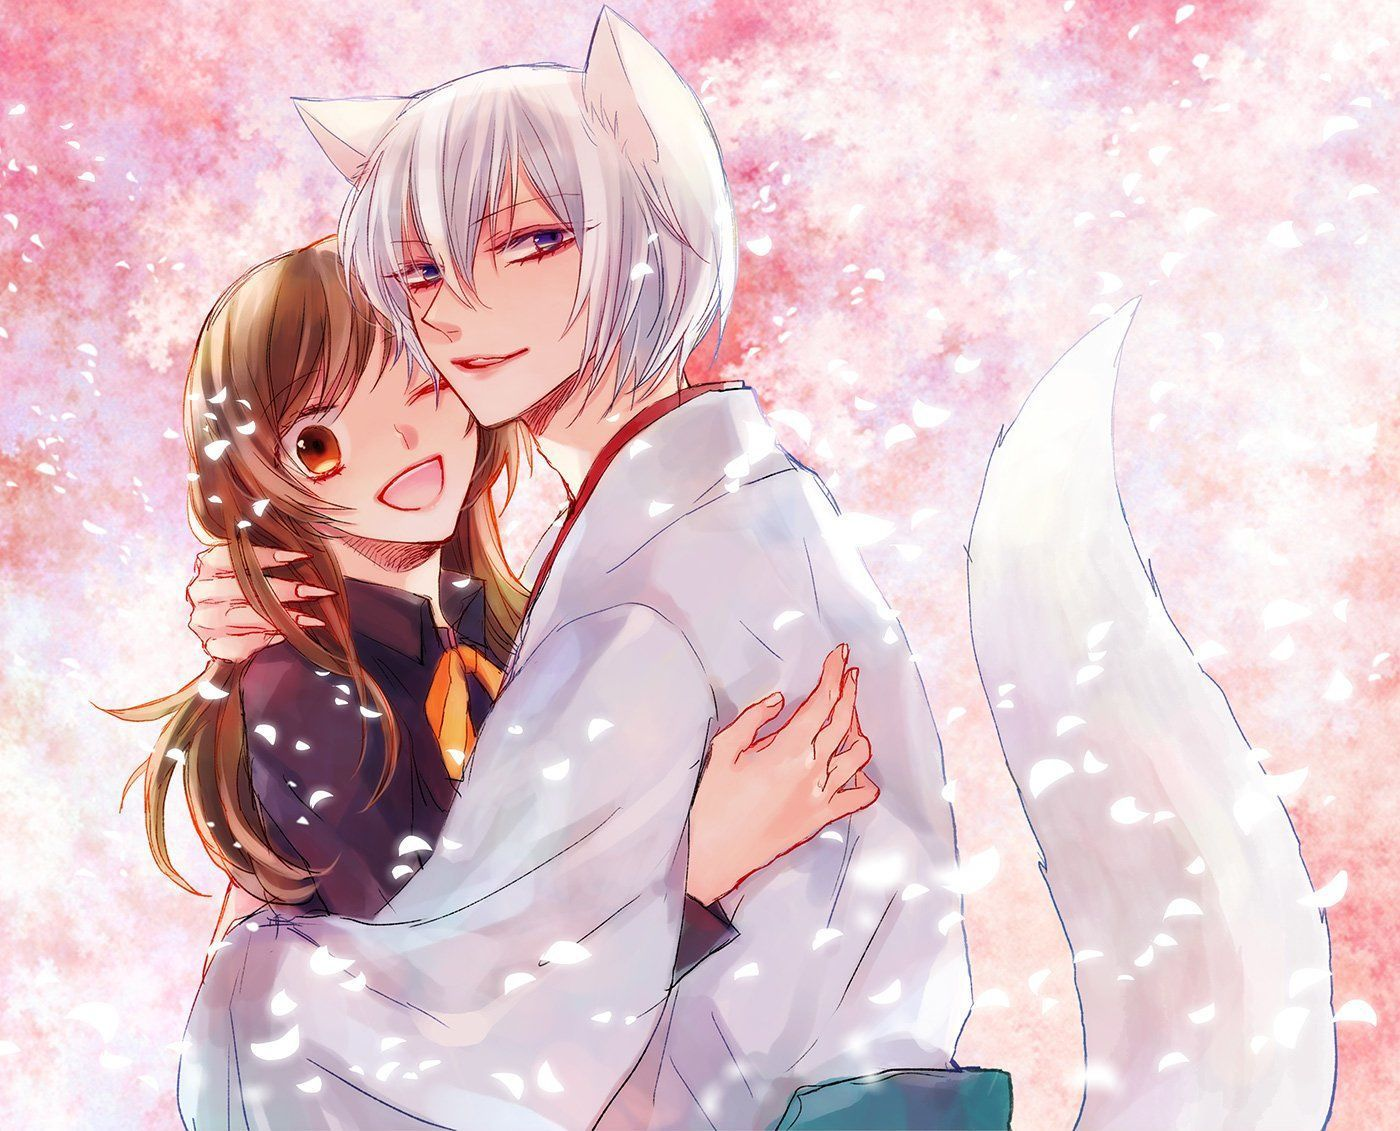 Kamisama kissanime download hd desktopmobile wallpaper and background images ultra fine full resolution royalty free gallery 3 d abstract cartoonanimation